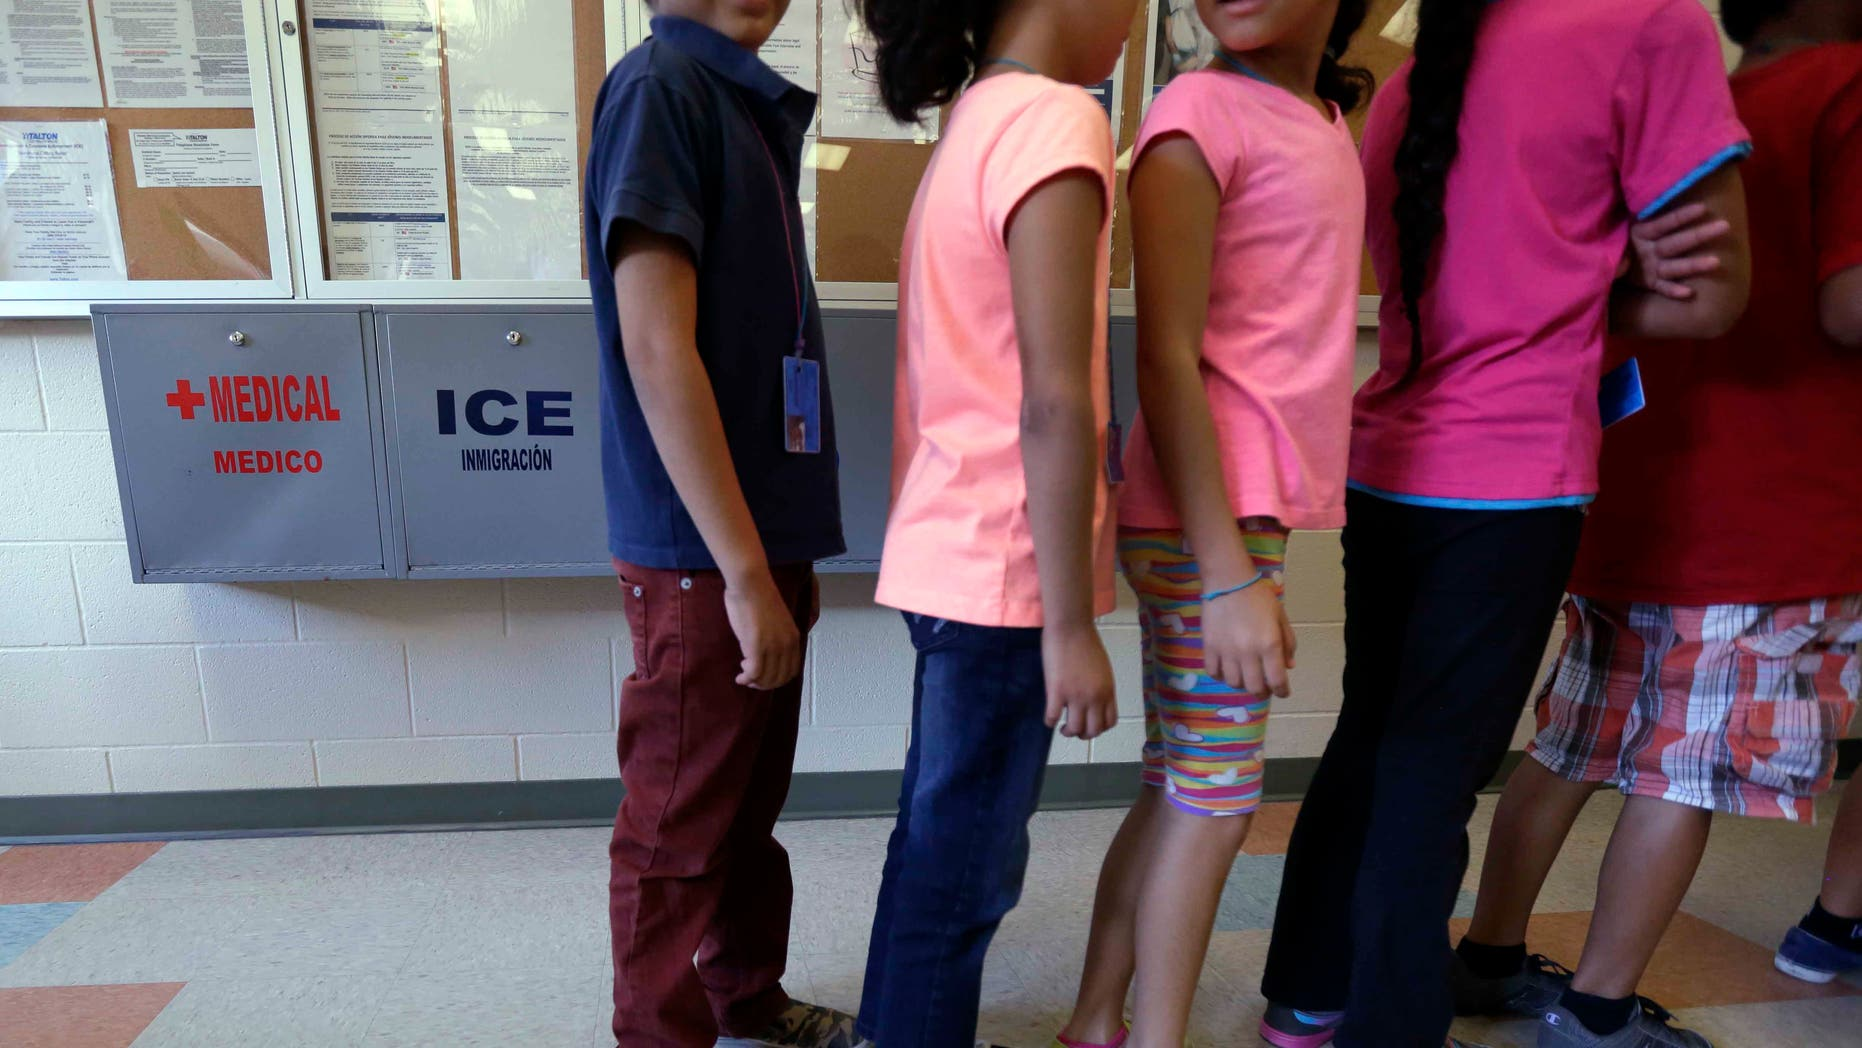 Detained immigrant children at the Karnes County Residential Center in a 2014 file photo.